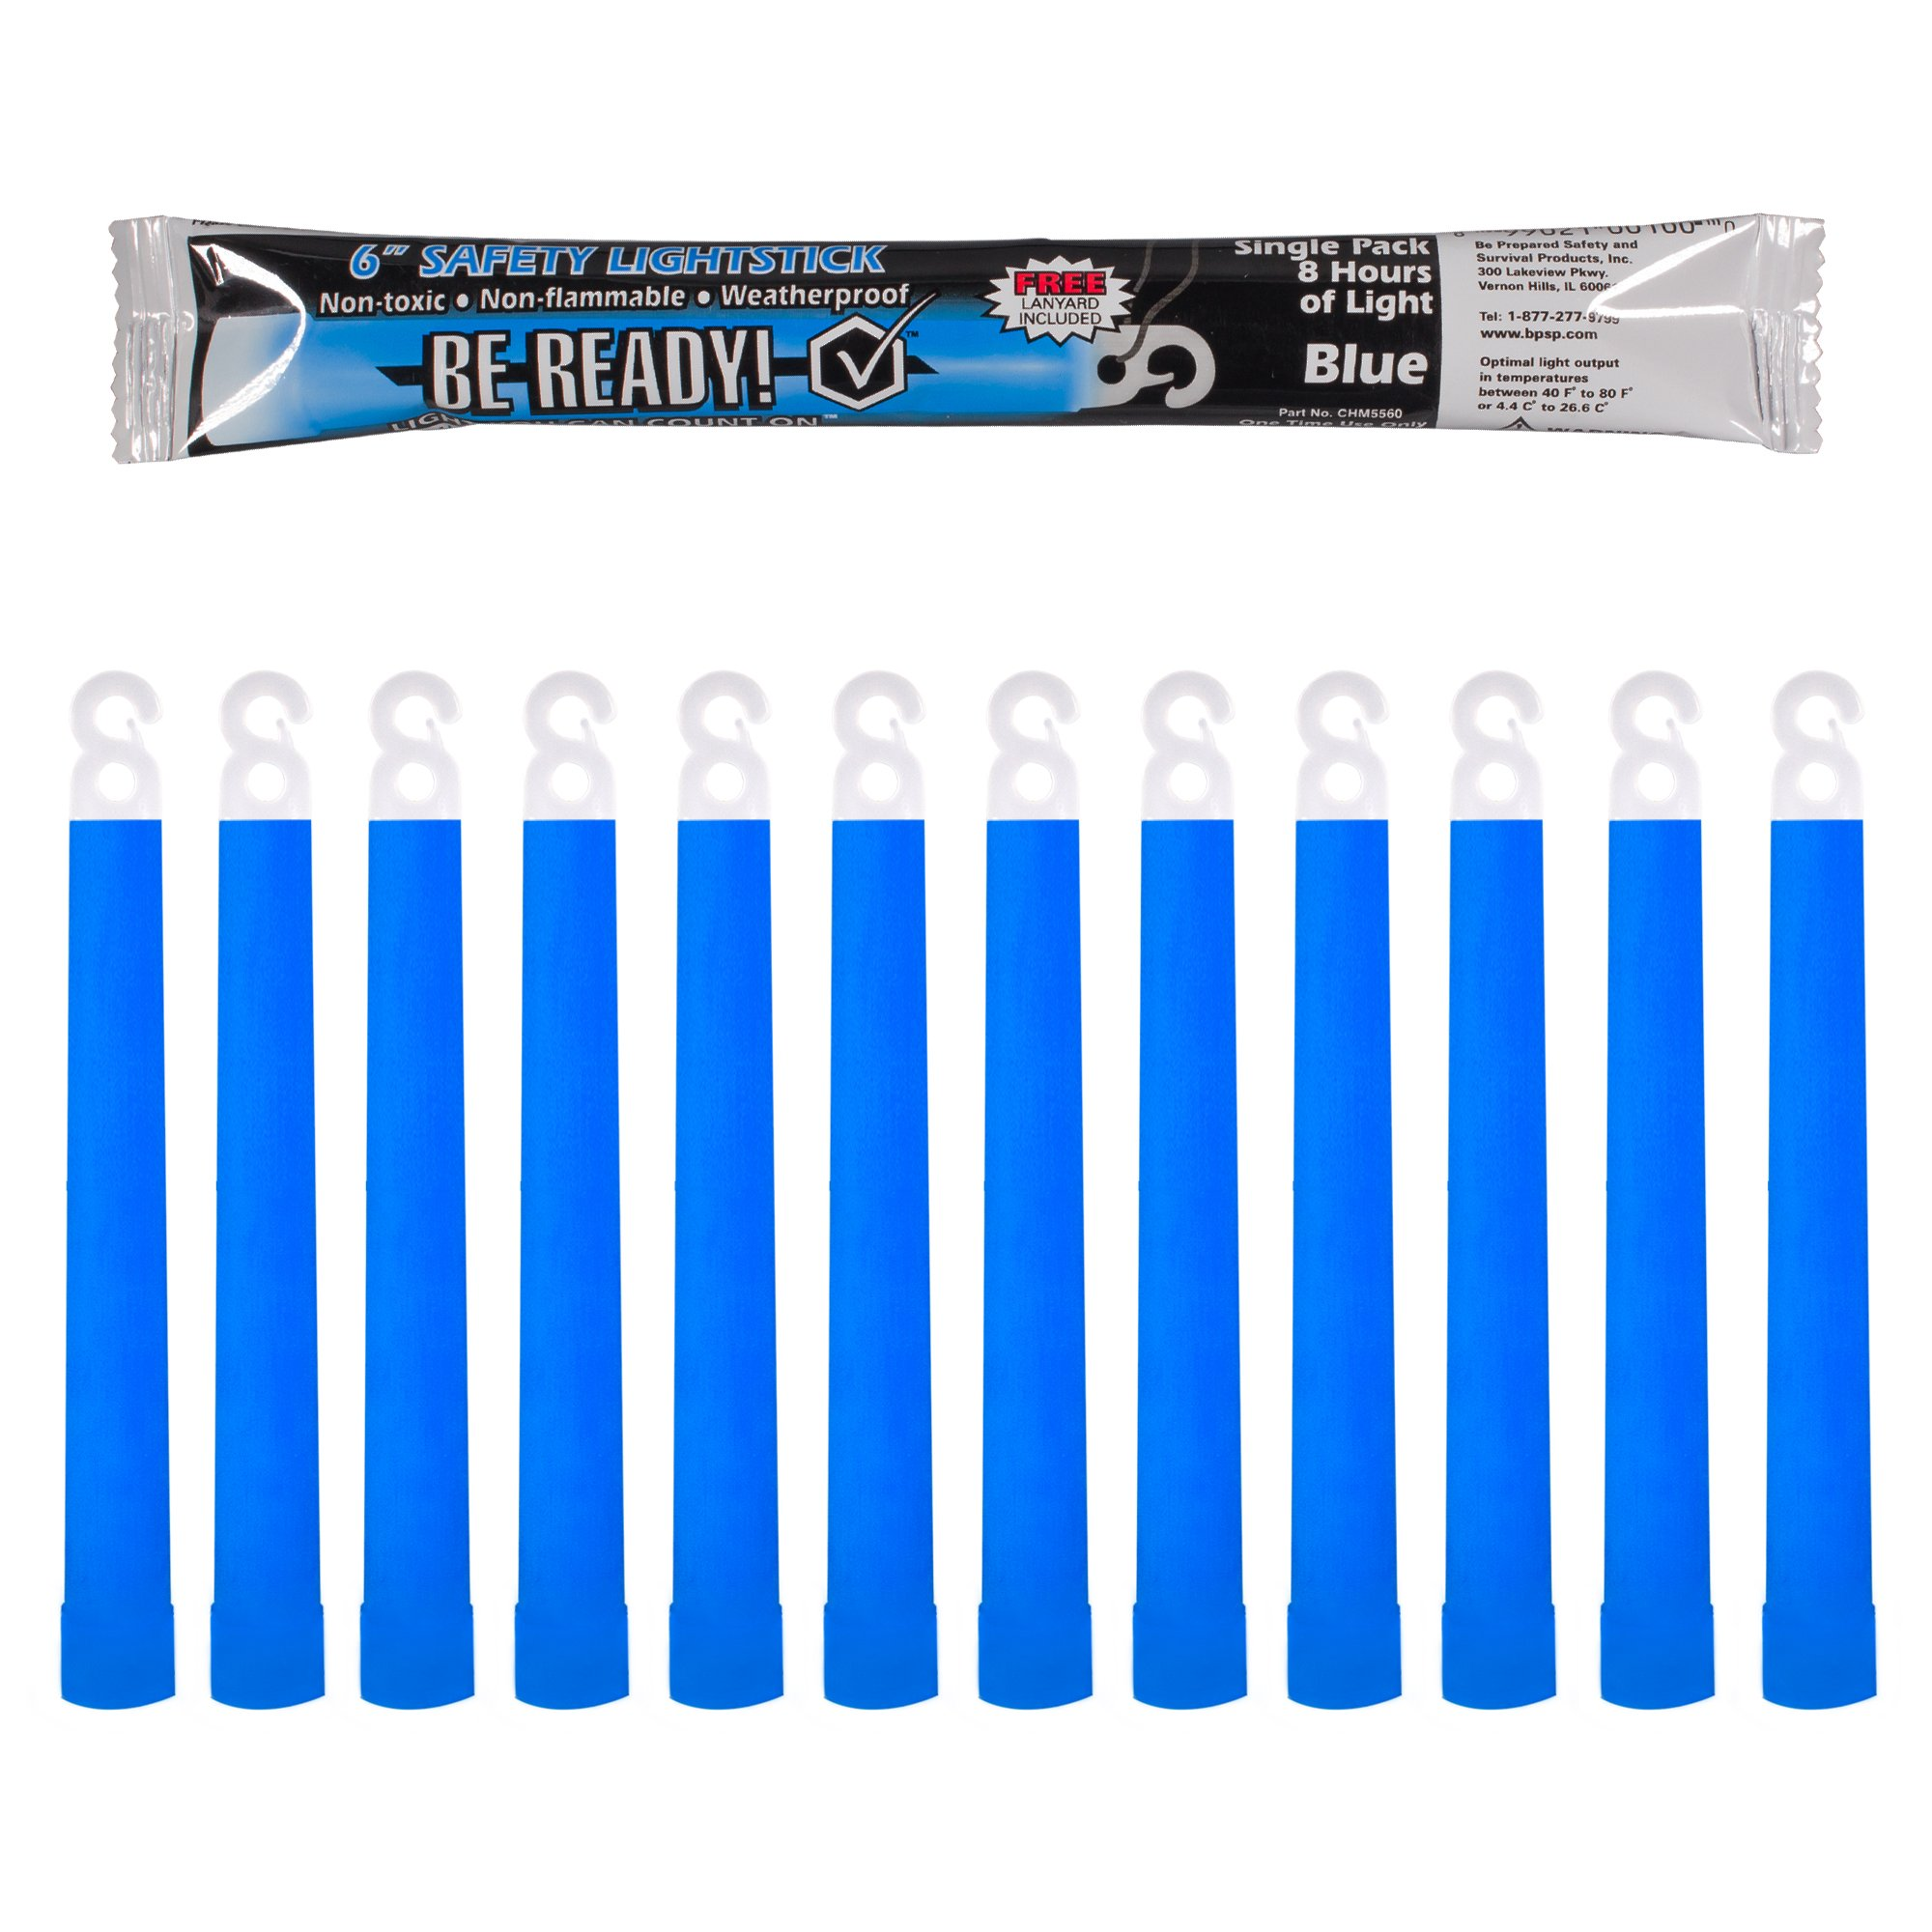 Be Ready Blue Glow Sticks - Industrial Grade 8+ hour Illumination Emergency Safety Chemical Light Glow Sticks (36 Pack)